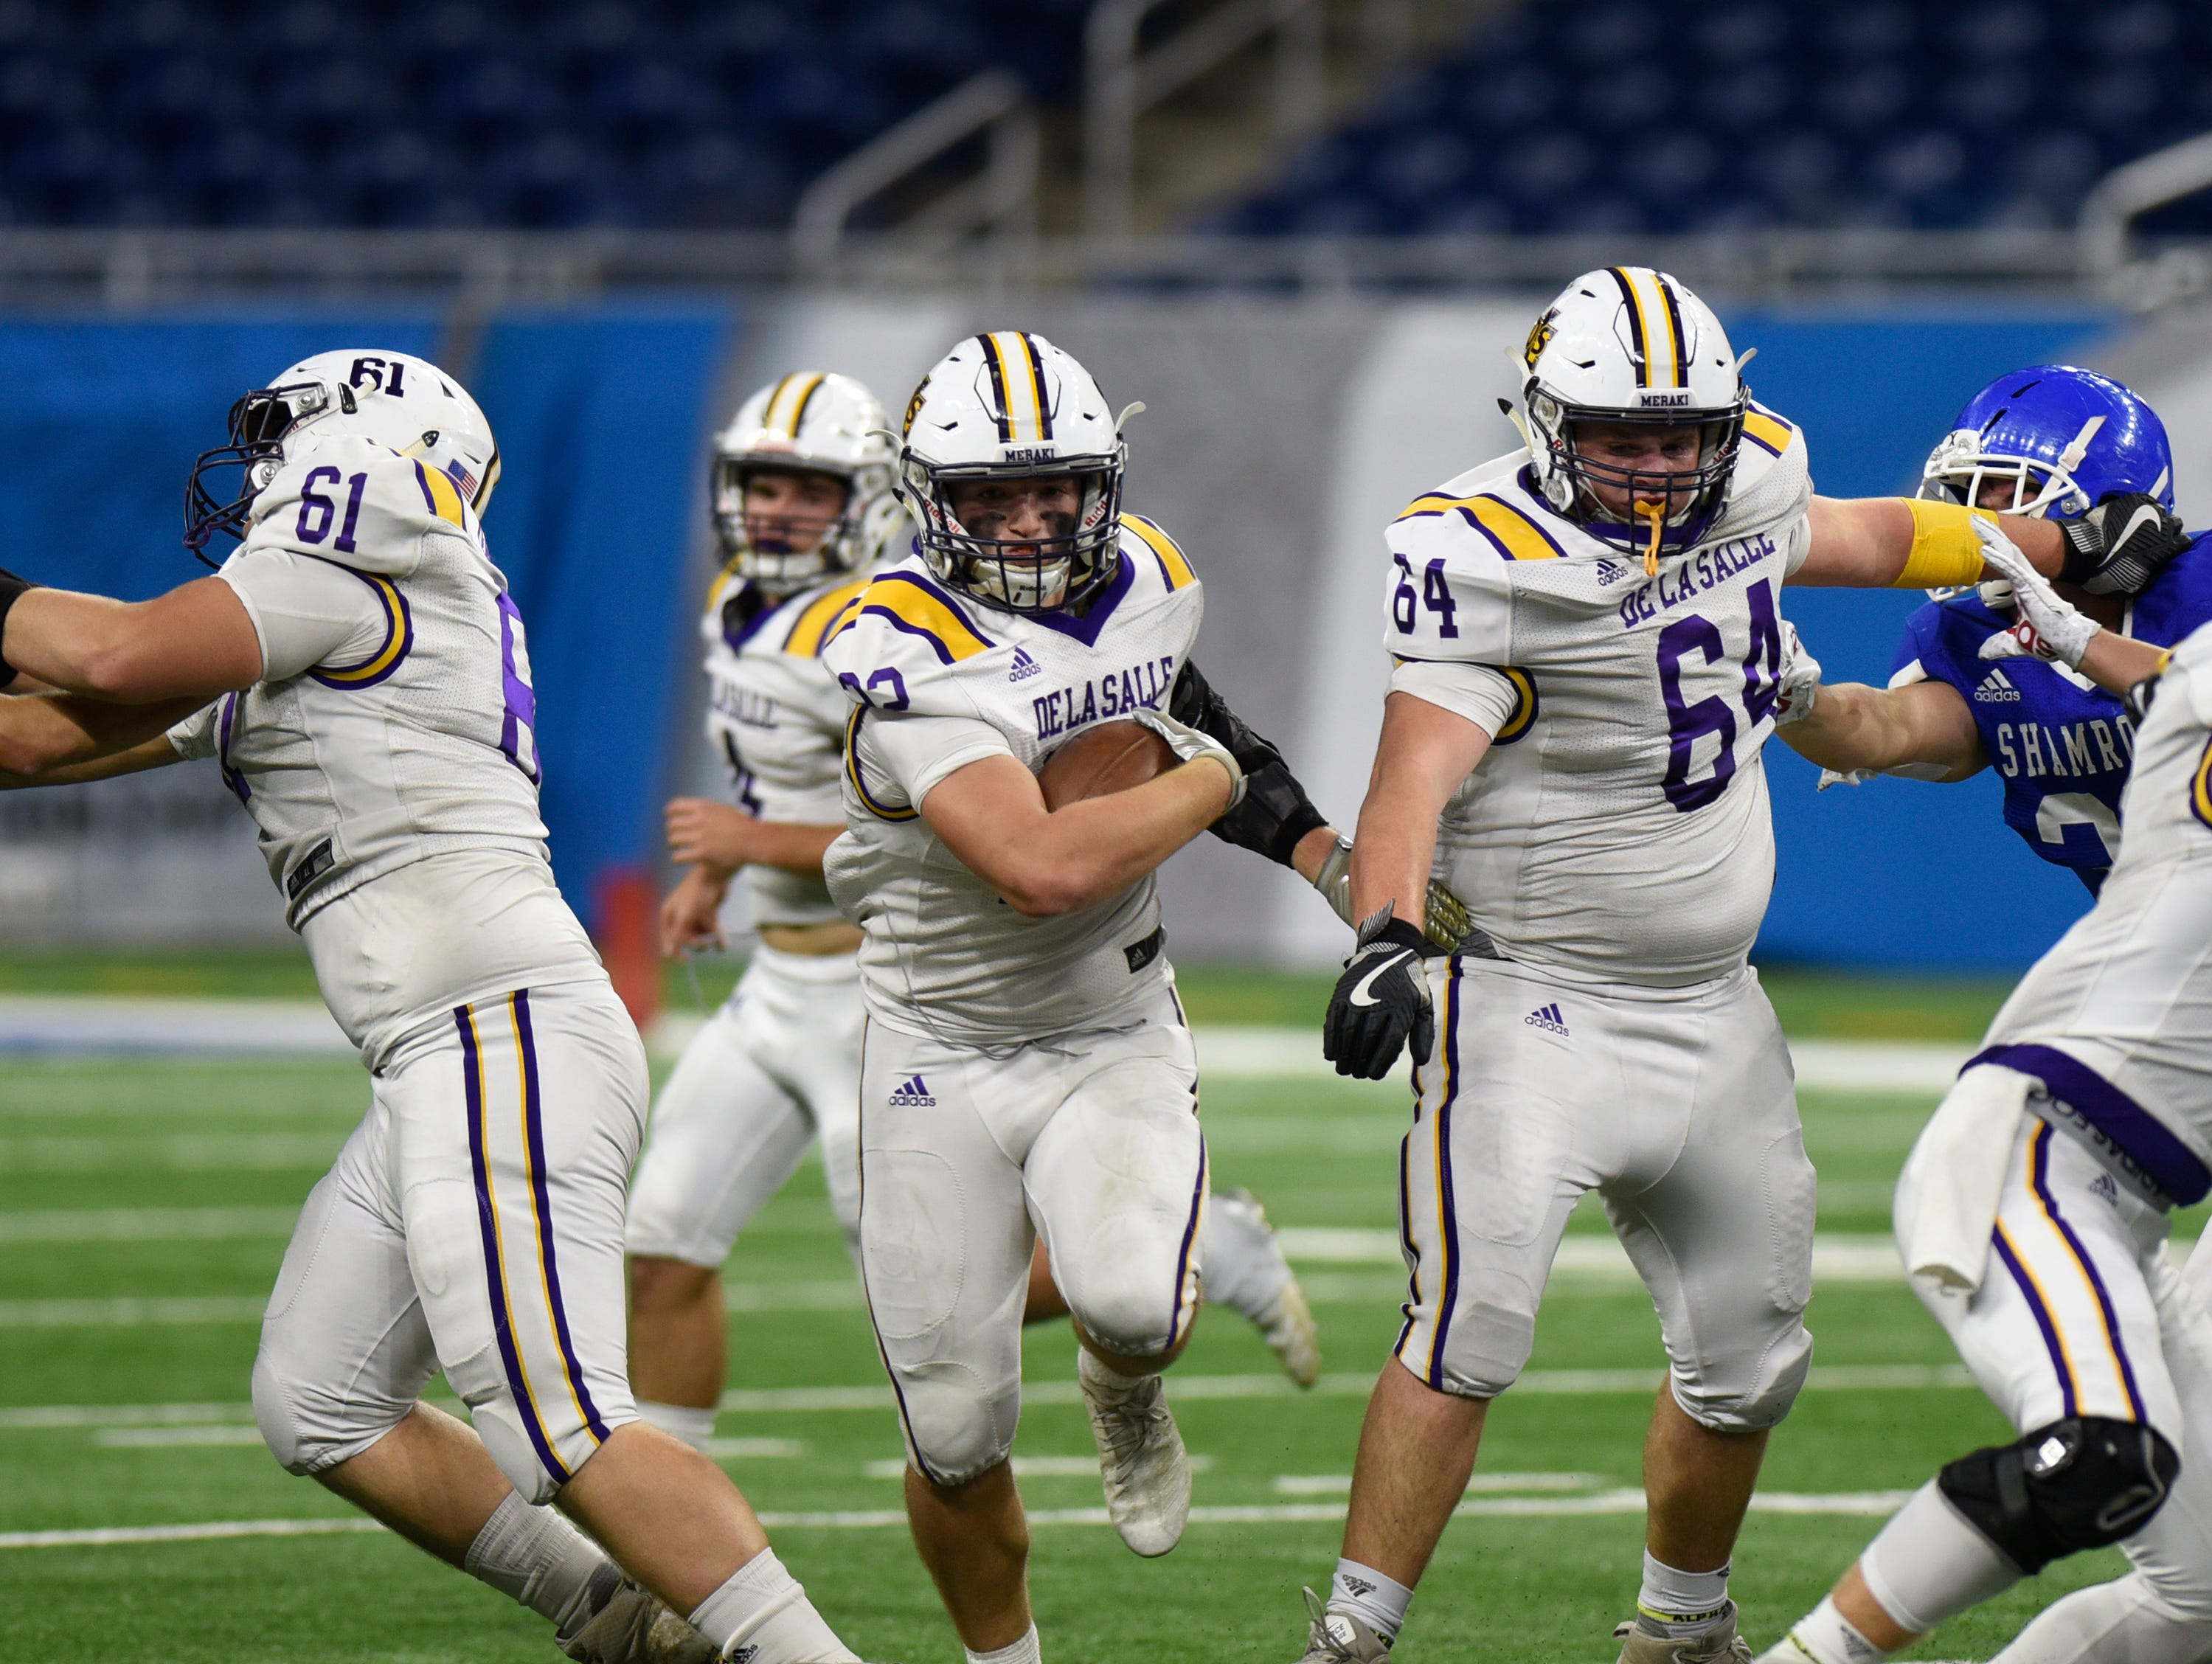 Warren De La Salle running back/DB Evan Vaillancourt (22) runs the ball during Catholic League Prep Bowl AB Division championship game at Ford Field Oct. 20, 2018.